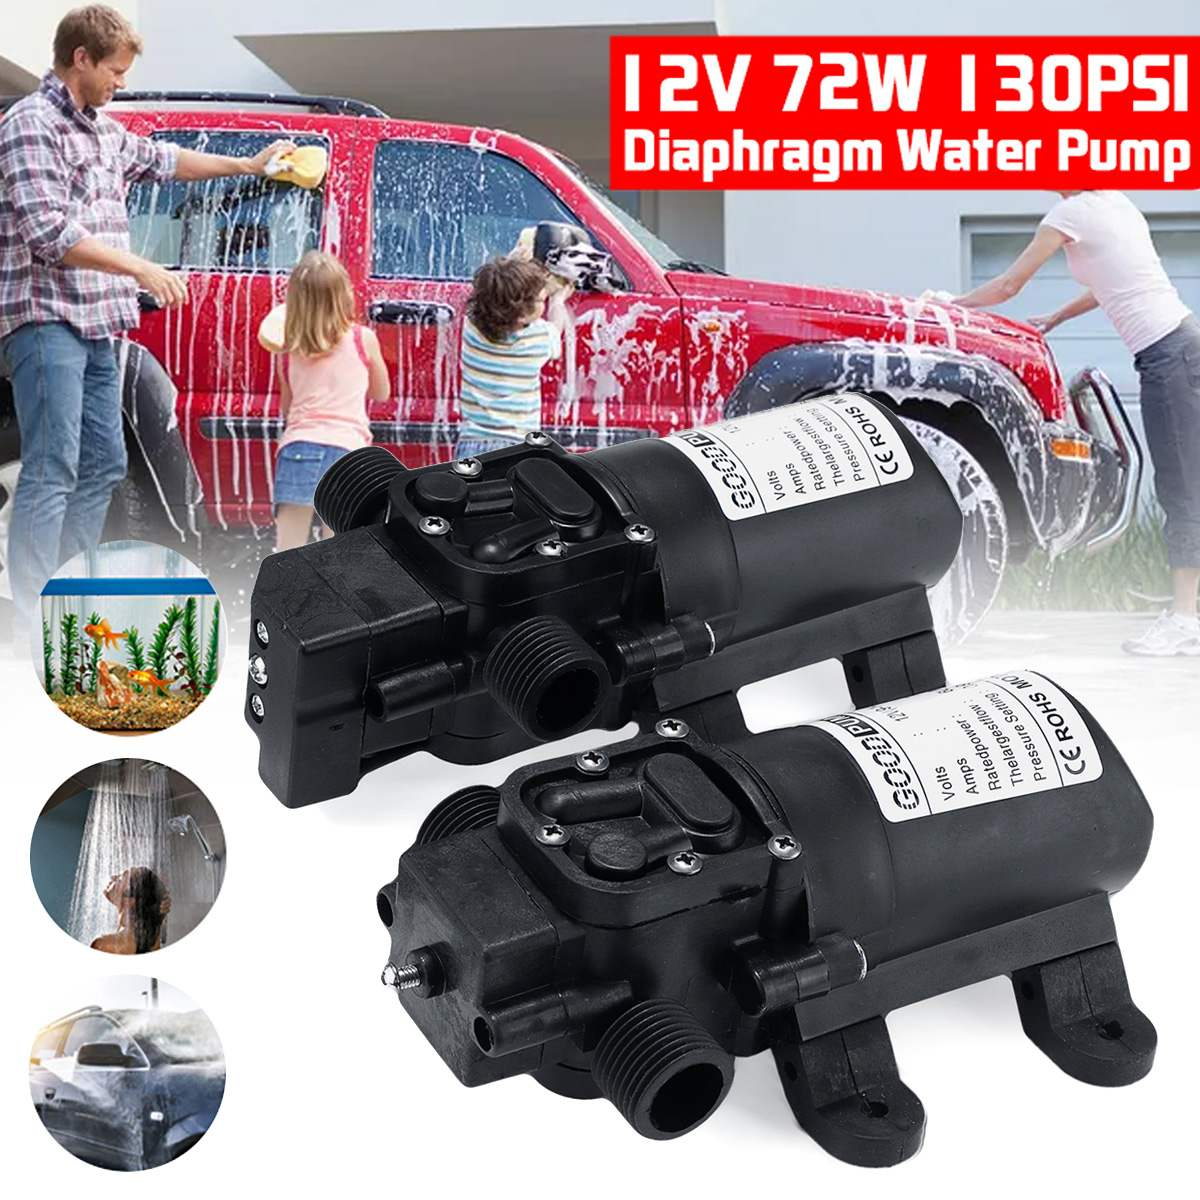 DC 12V 130PSI 6L/min Electric Water Pump Black Micro High Pressure Diaphragm Water Pump Sprayer Car Wash 12 V image